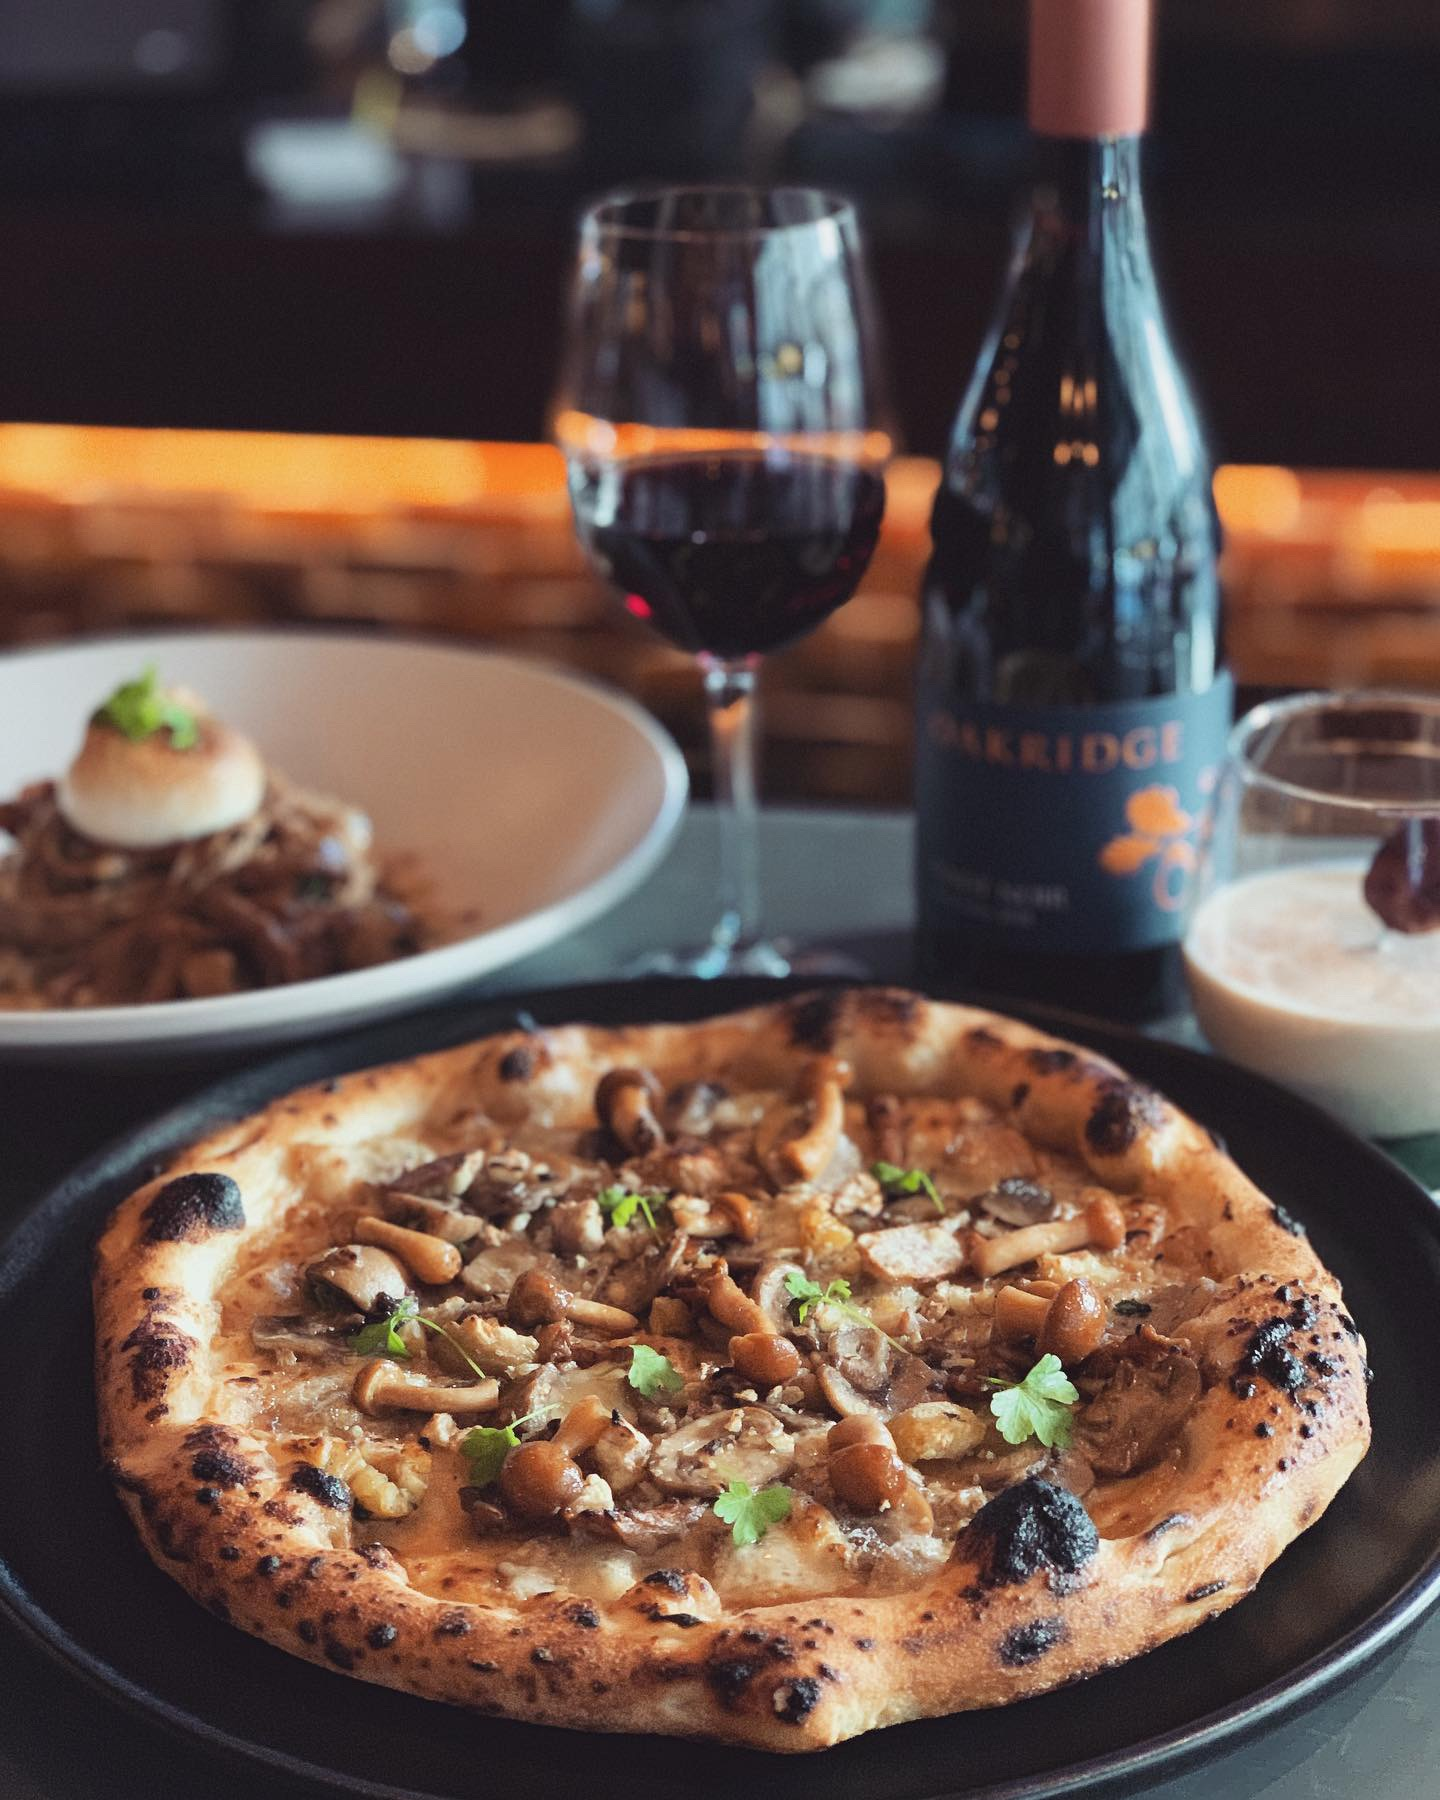 19-25 June - Our specials have a common theme this week: chestnut 🌰. ~~ C A S T A G N A ~~ Creamy chestnut purée, wild mushroom, Gorgonzola piccante , open-flame roasted and crushed chestnuts.~ Matched with a glass of Oakridge 'Yarra Valley Series' Pinot Noir (VIC). ~